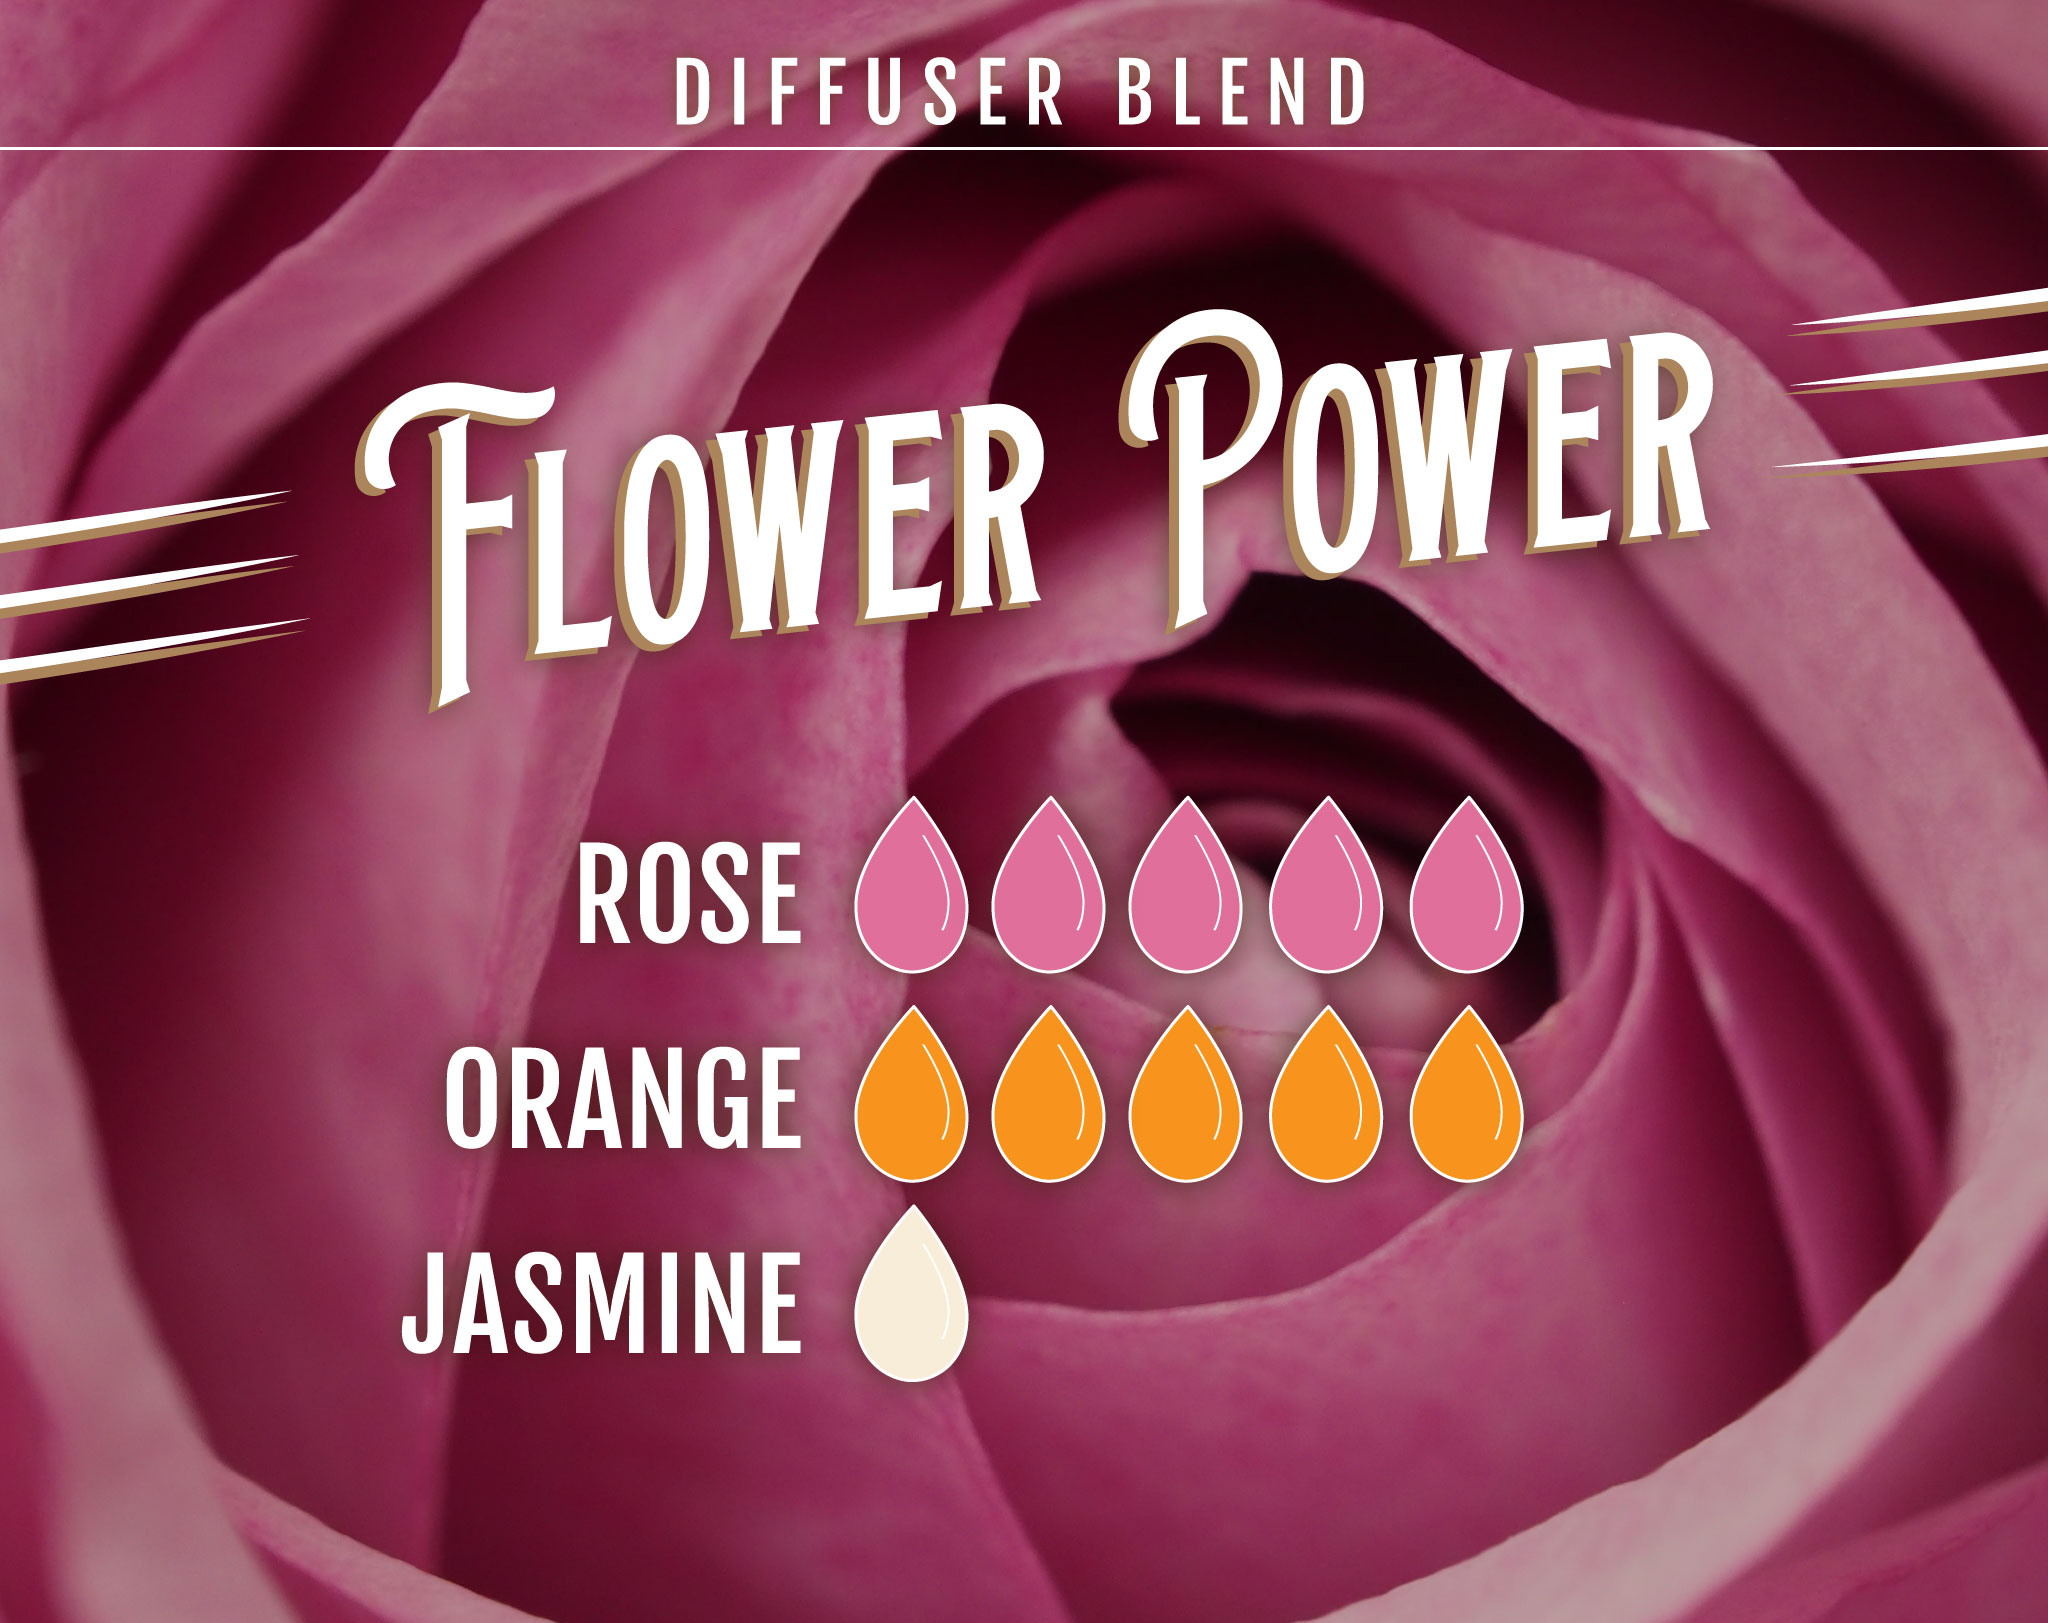 Flower Power Diffuser Blend - 5 drops of Rose Essential Oil, 5 drops of Orange Essential Oil, 1 drop of Jasmine Essential Oil